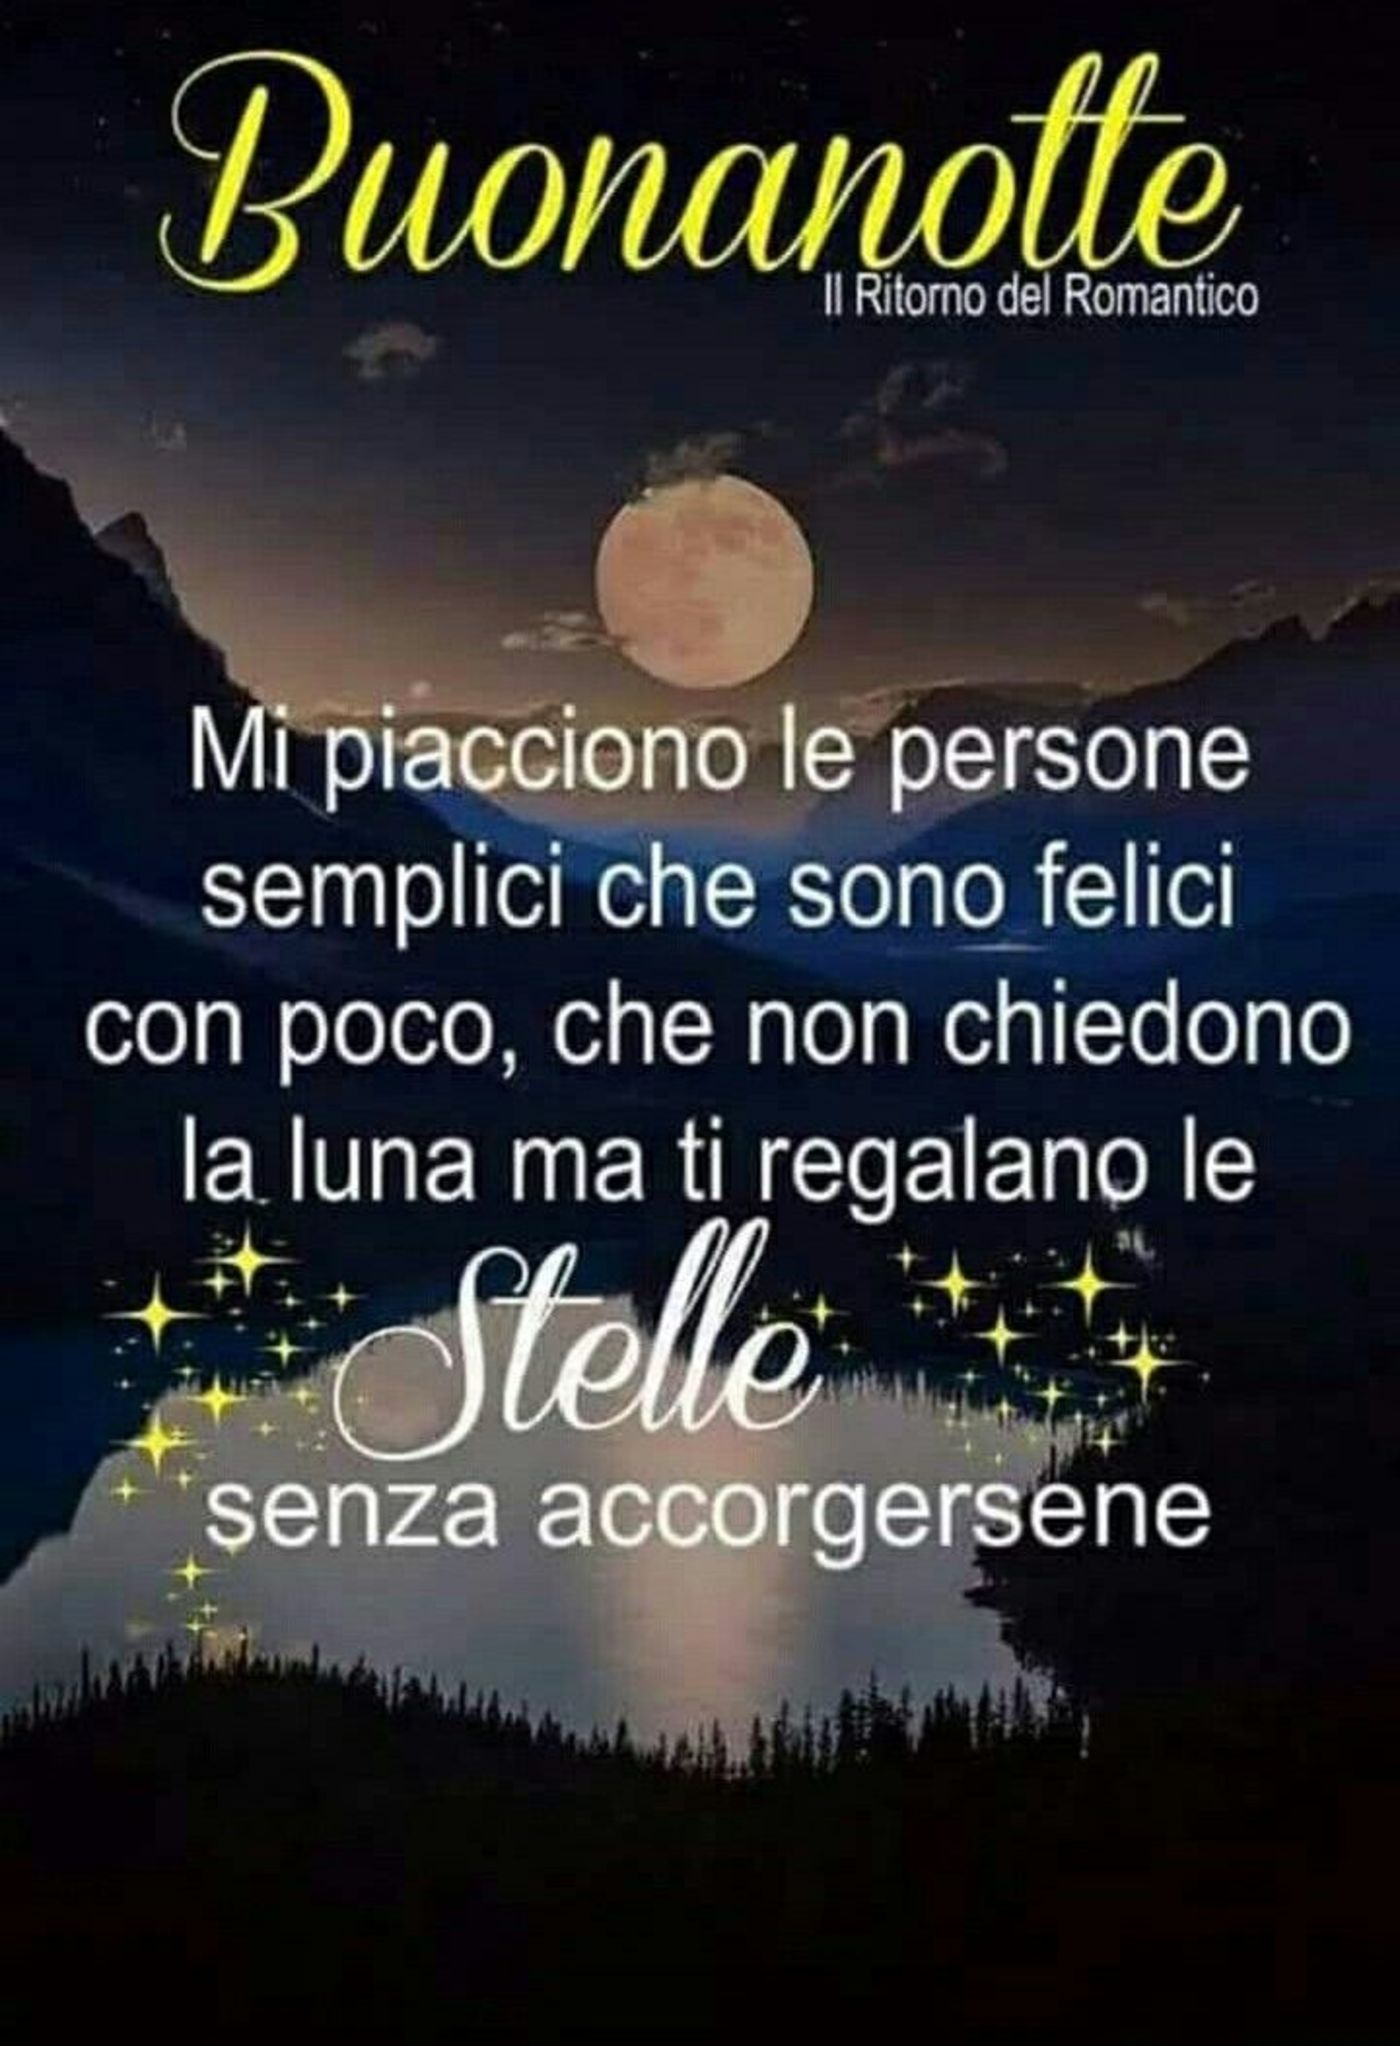 Dolce Notte 3090 Buongiornissimocaffe It